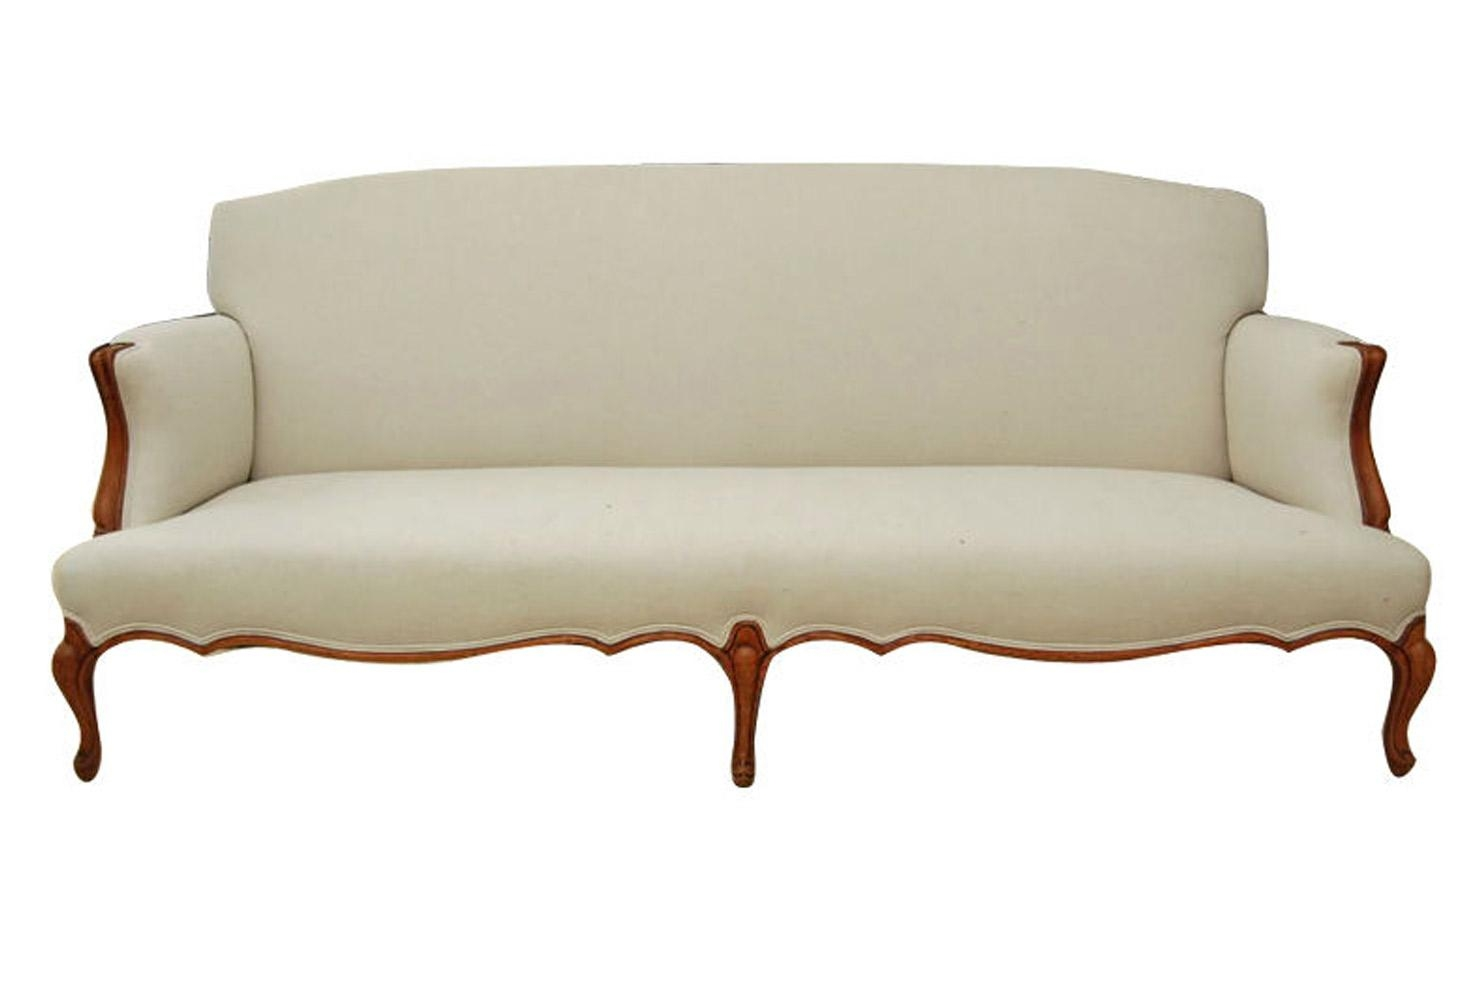 20 collection of vintage sofa styles sofa ideas for Sofa sofa furniture